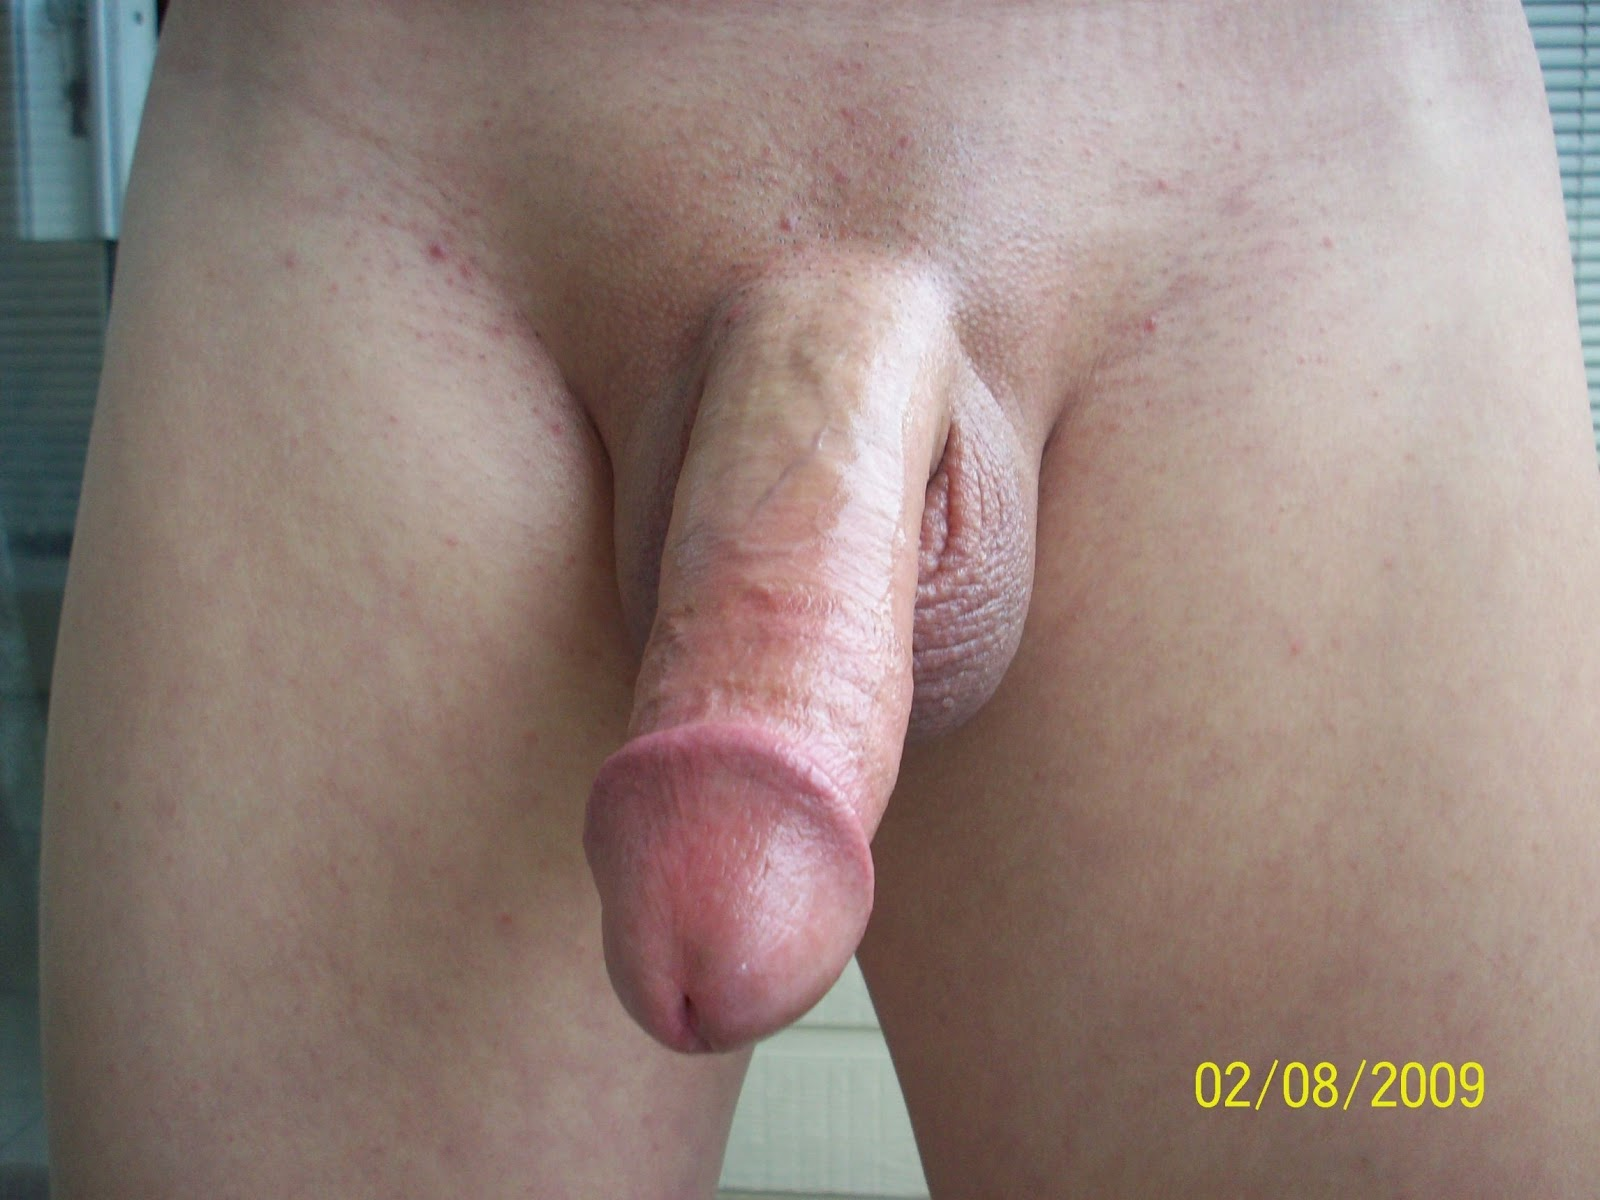 Lick that small cut cock feel like awesome!